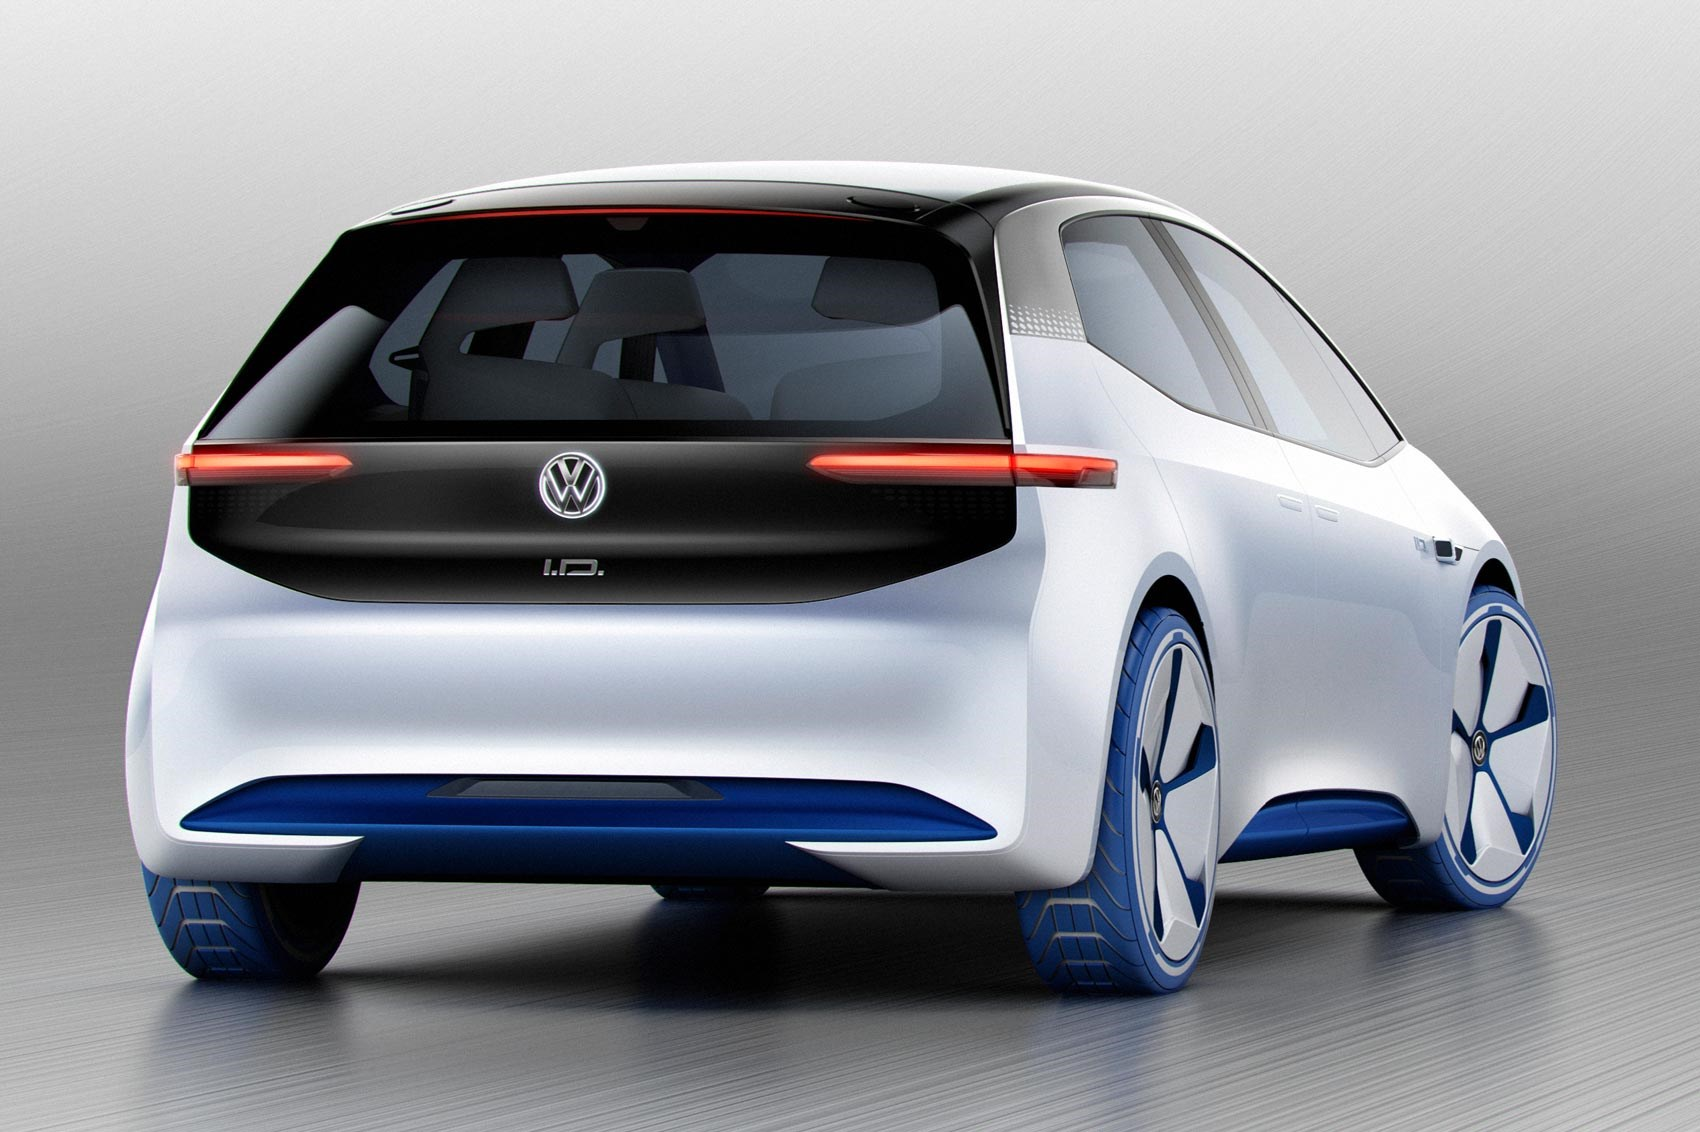 A New Electric Concept Car From Vw